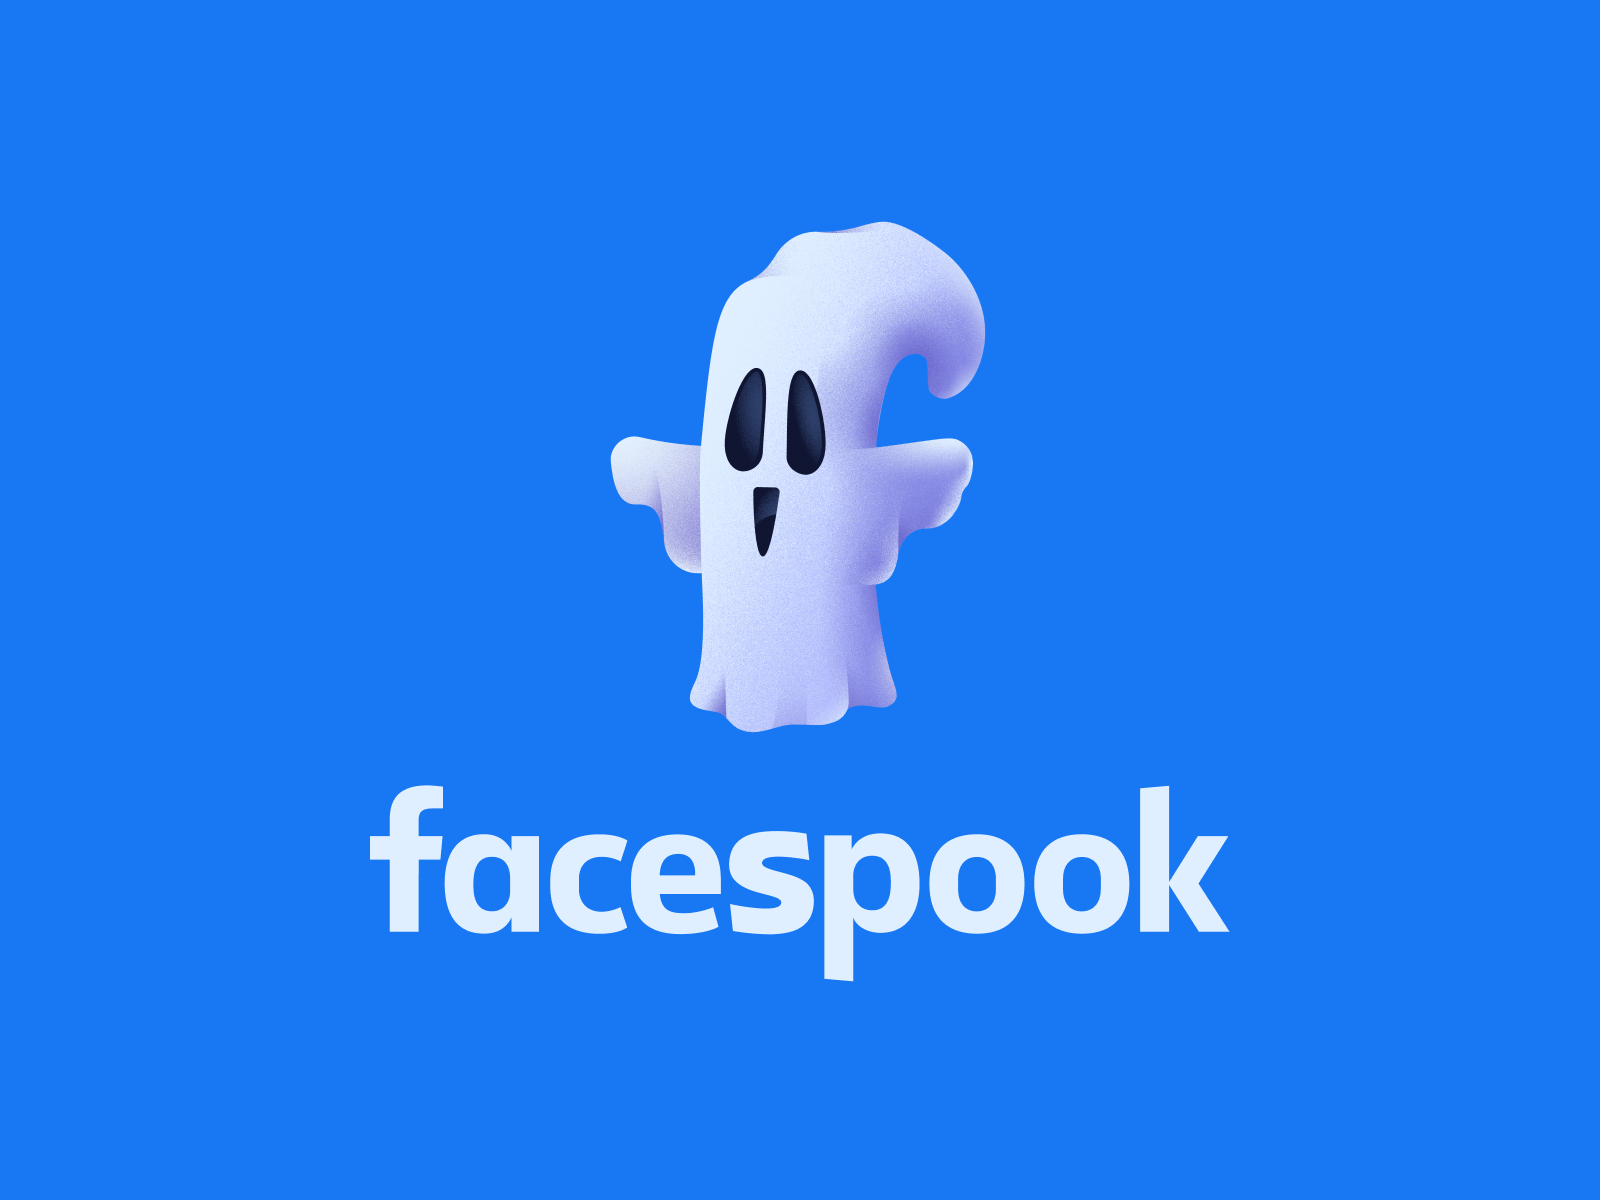 Dawn of the Brands: Facespook by Halo Graphic